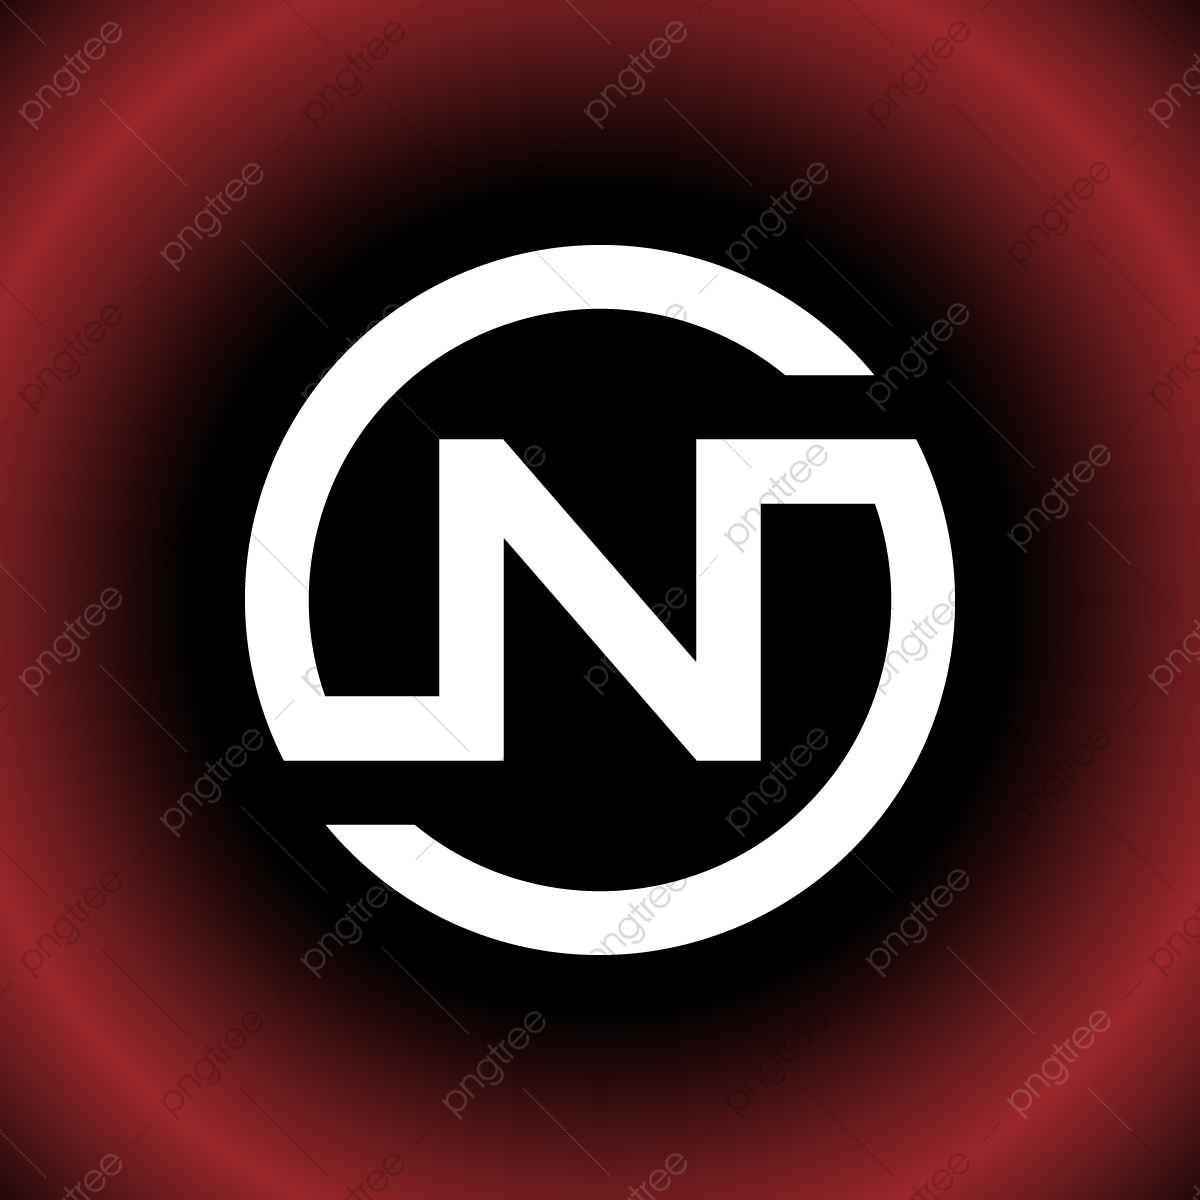 Circular Letter N On Sn Vector Logo Design, Icon, Arrow.